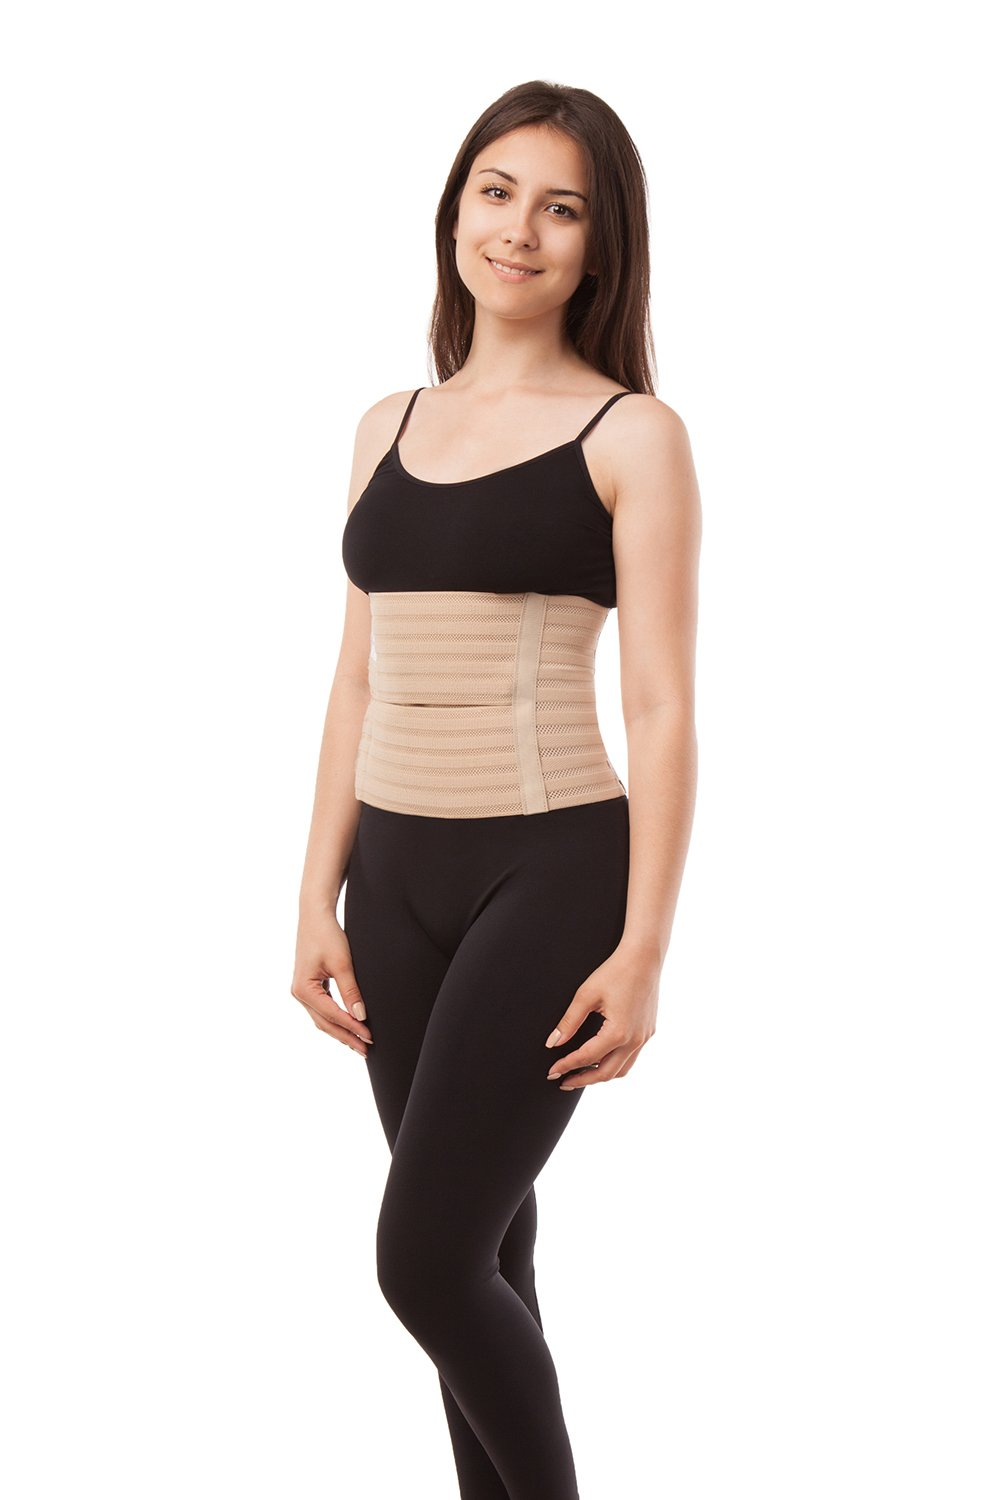 "9"" Abdominal Binder - Breathable Medium Support (AB-309)"